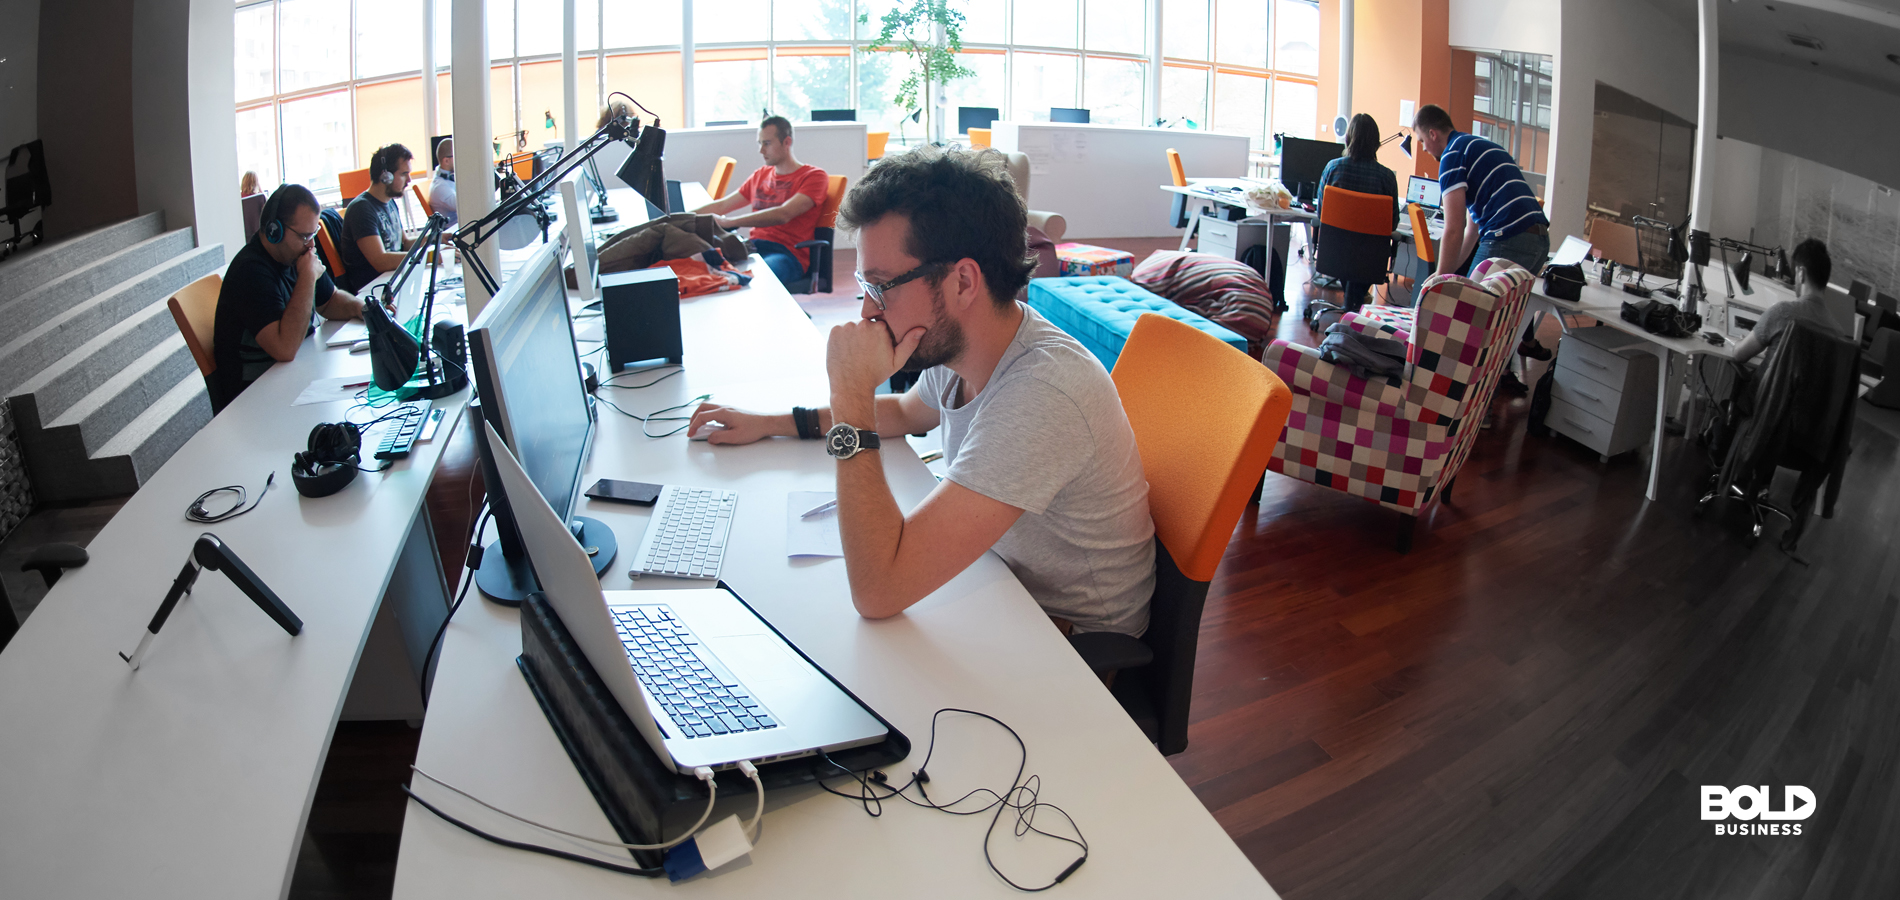 a photo showing a fish-eye view of an open co-working space with startup owners working on their laptops, depicting the possibility of the presence of a startup bubble